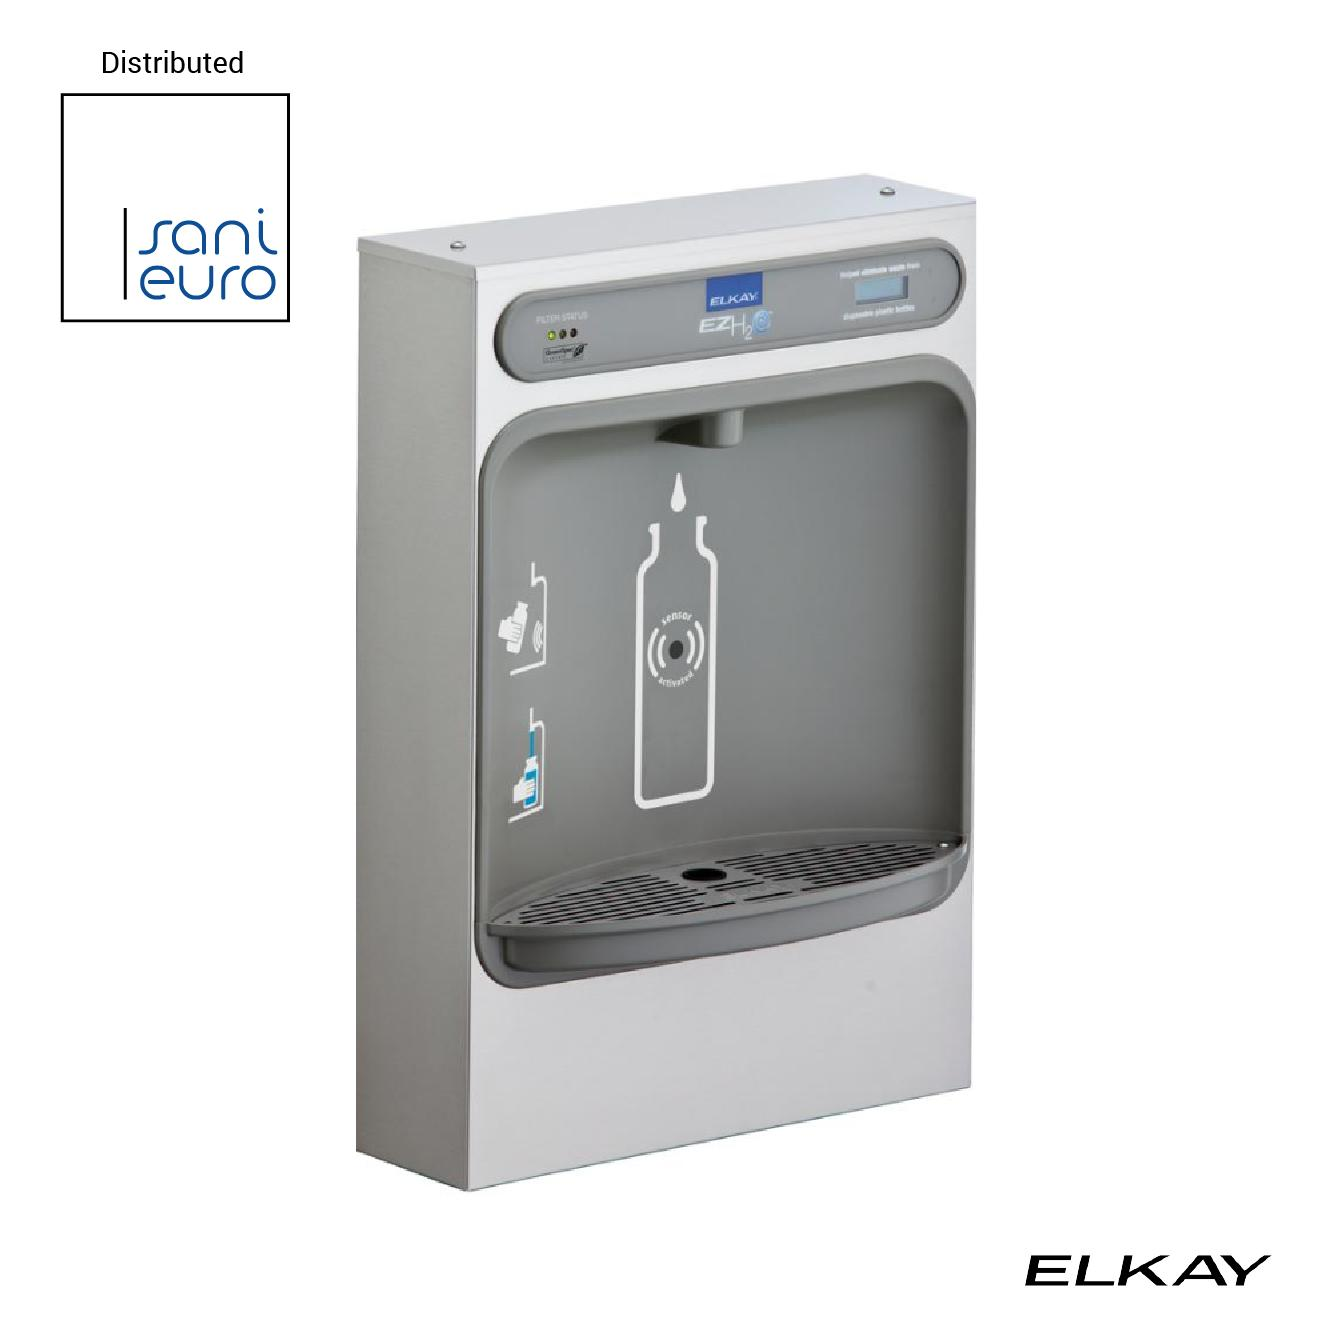 Elkay Ezh2O Bottle Filling Station Surface Mount Filtered, Non-Refrigerated Stainless 220V ELK-LZWSS